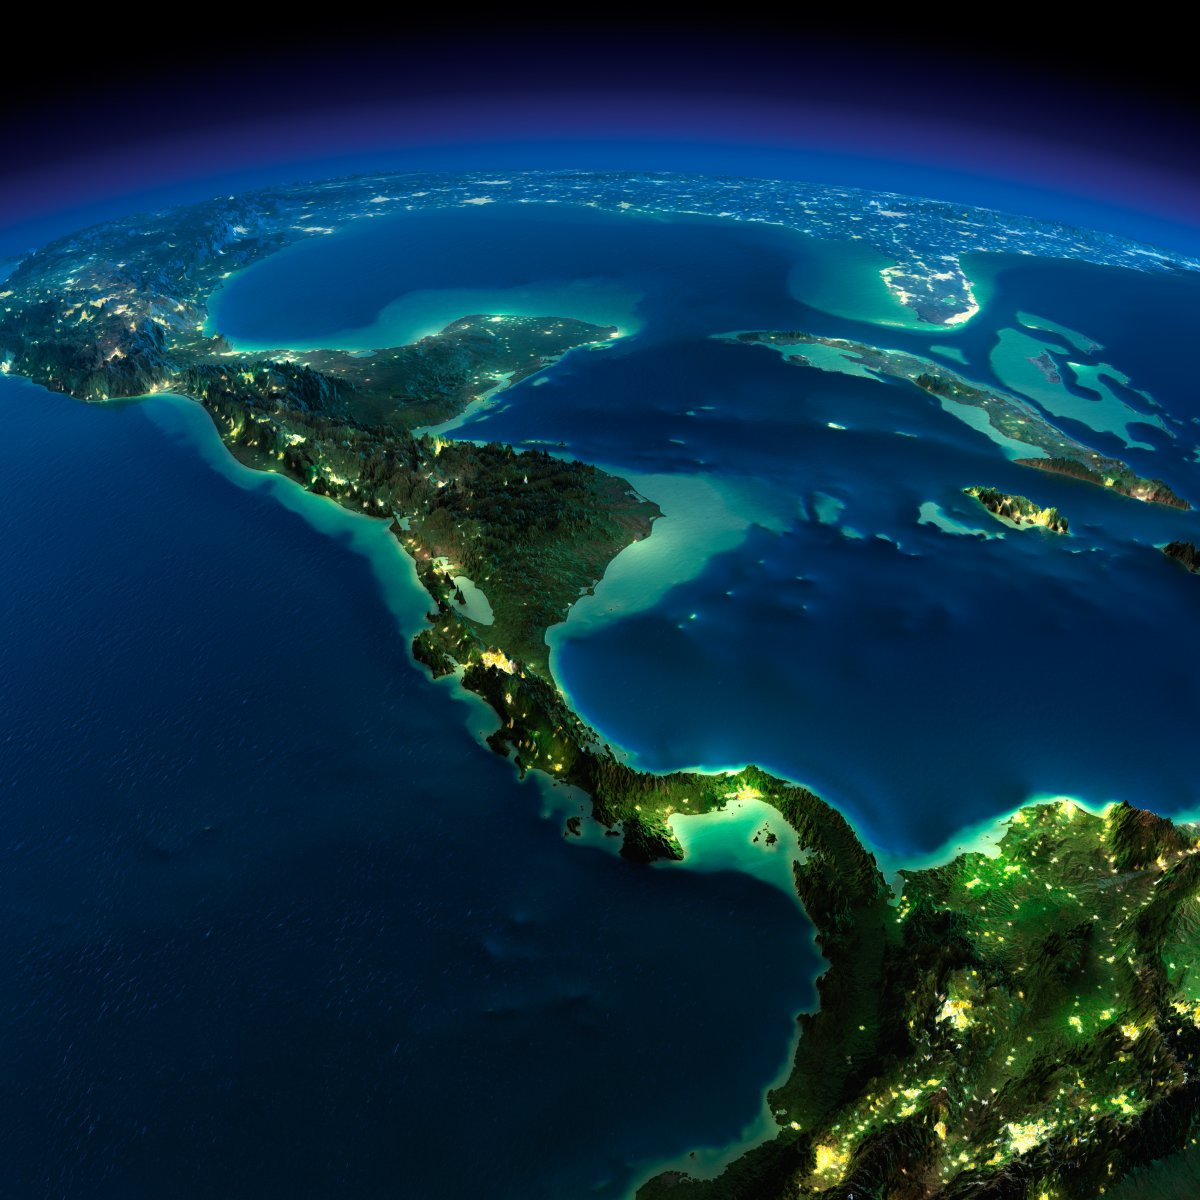 earth night photos central america by anton balazh